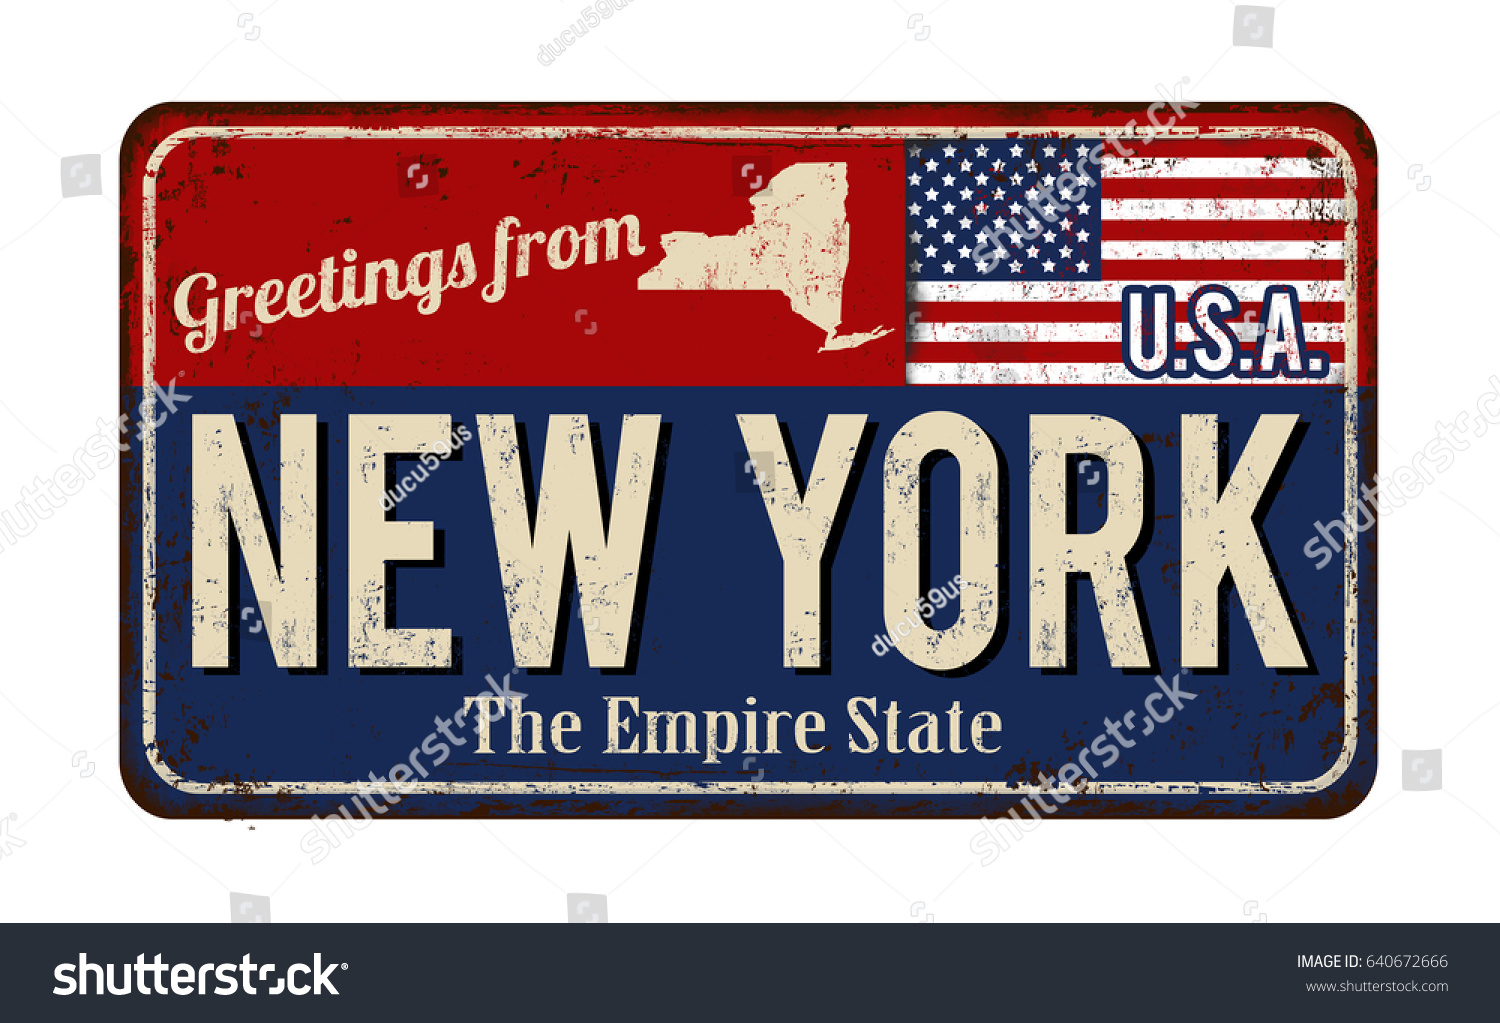 Greetings new york vintage rusty metal stock vector 640672666 greetings from new york vintage rusty metal sign on a white background vector illustration kristyandbryce Images